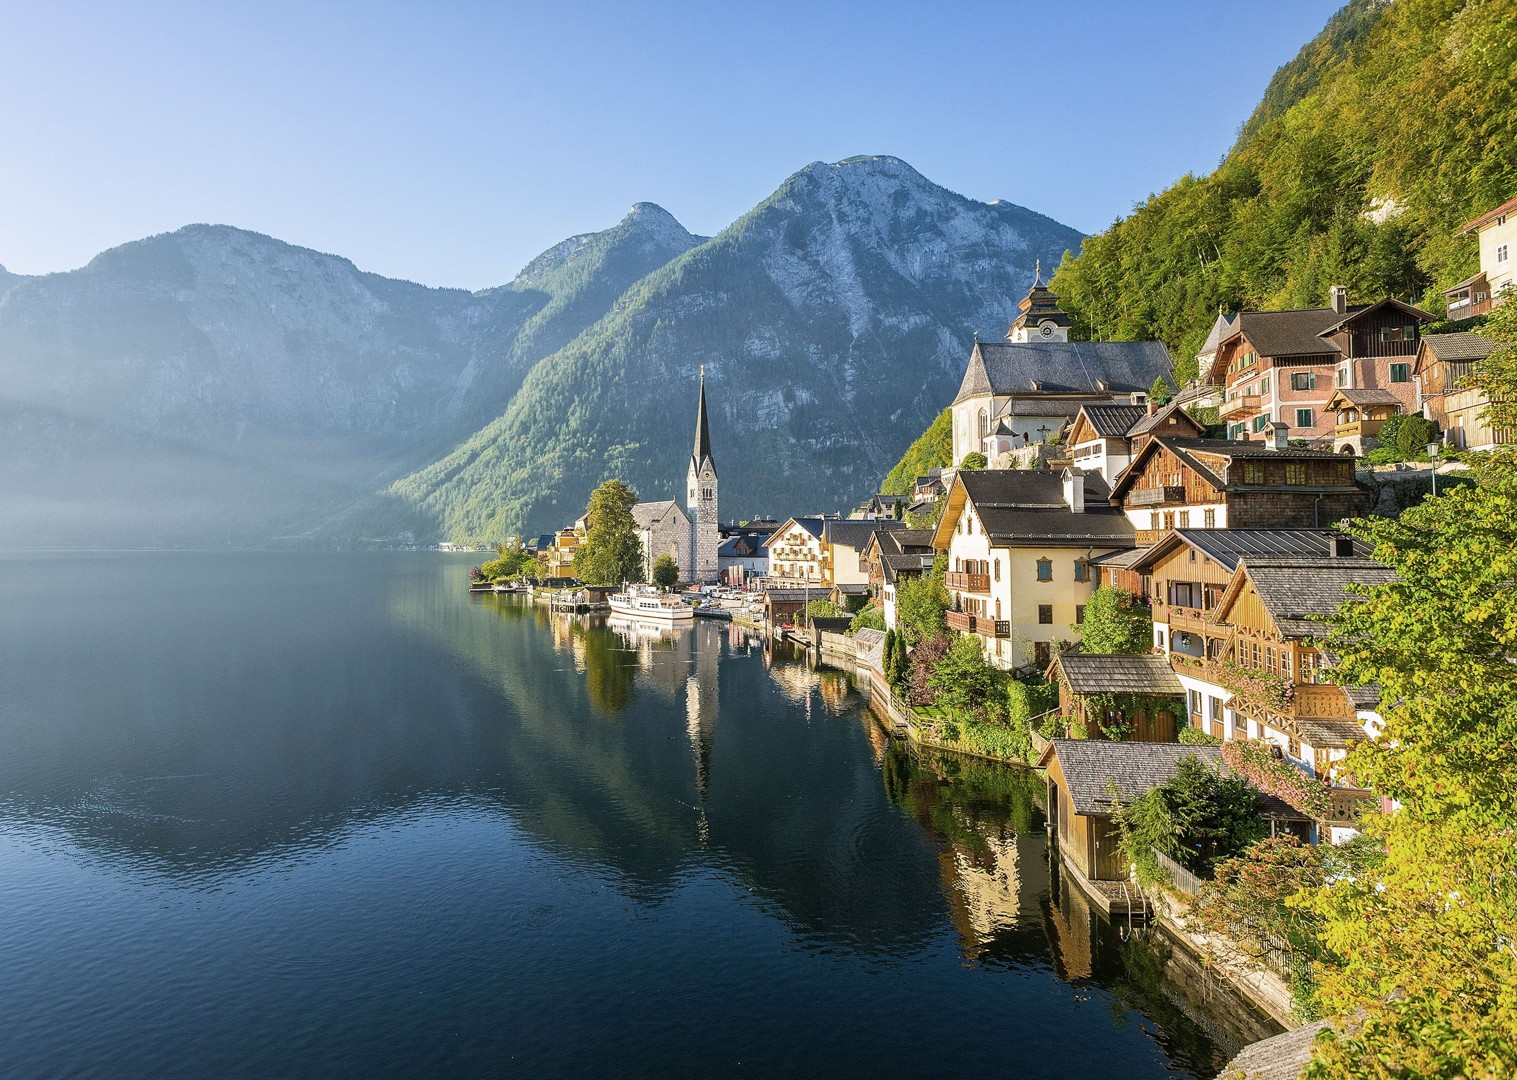 lake-hallstatt-austria-biking-tour-family-cycling-holiday.jpg - Austria - Ten Lakes Tour - Self-Guided Family Cycling Holiday - Family Cycling